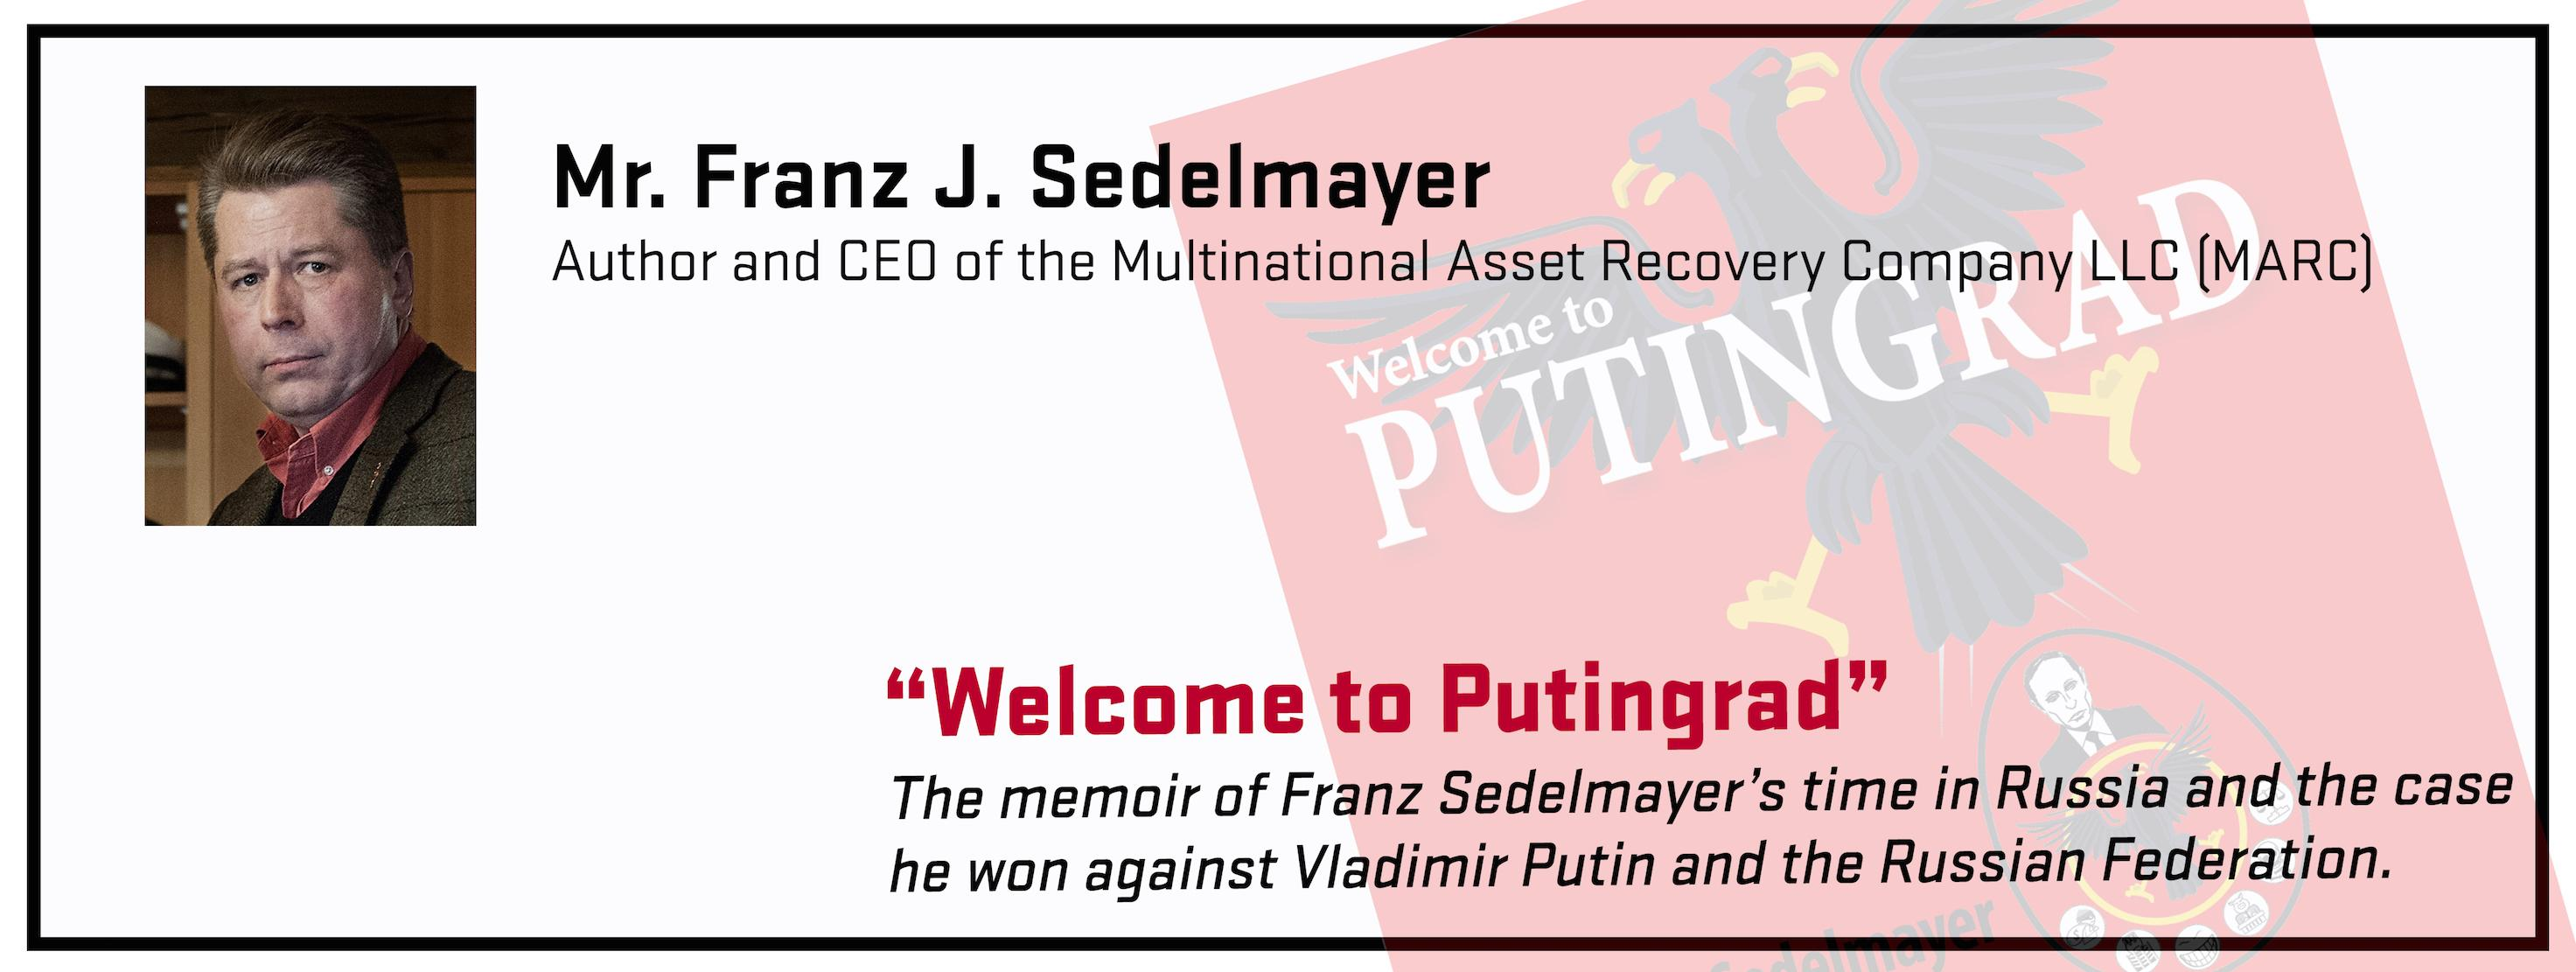 Mr. Franz J. Sedelmayer